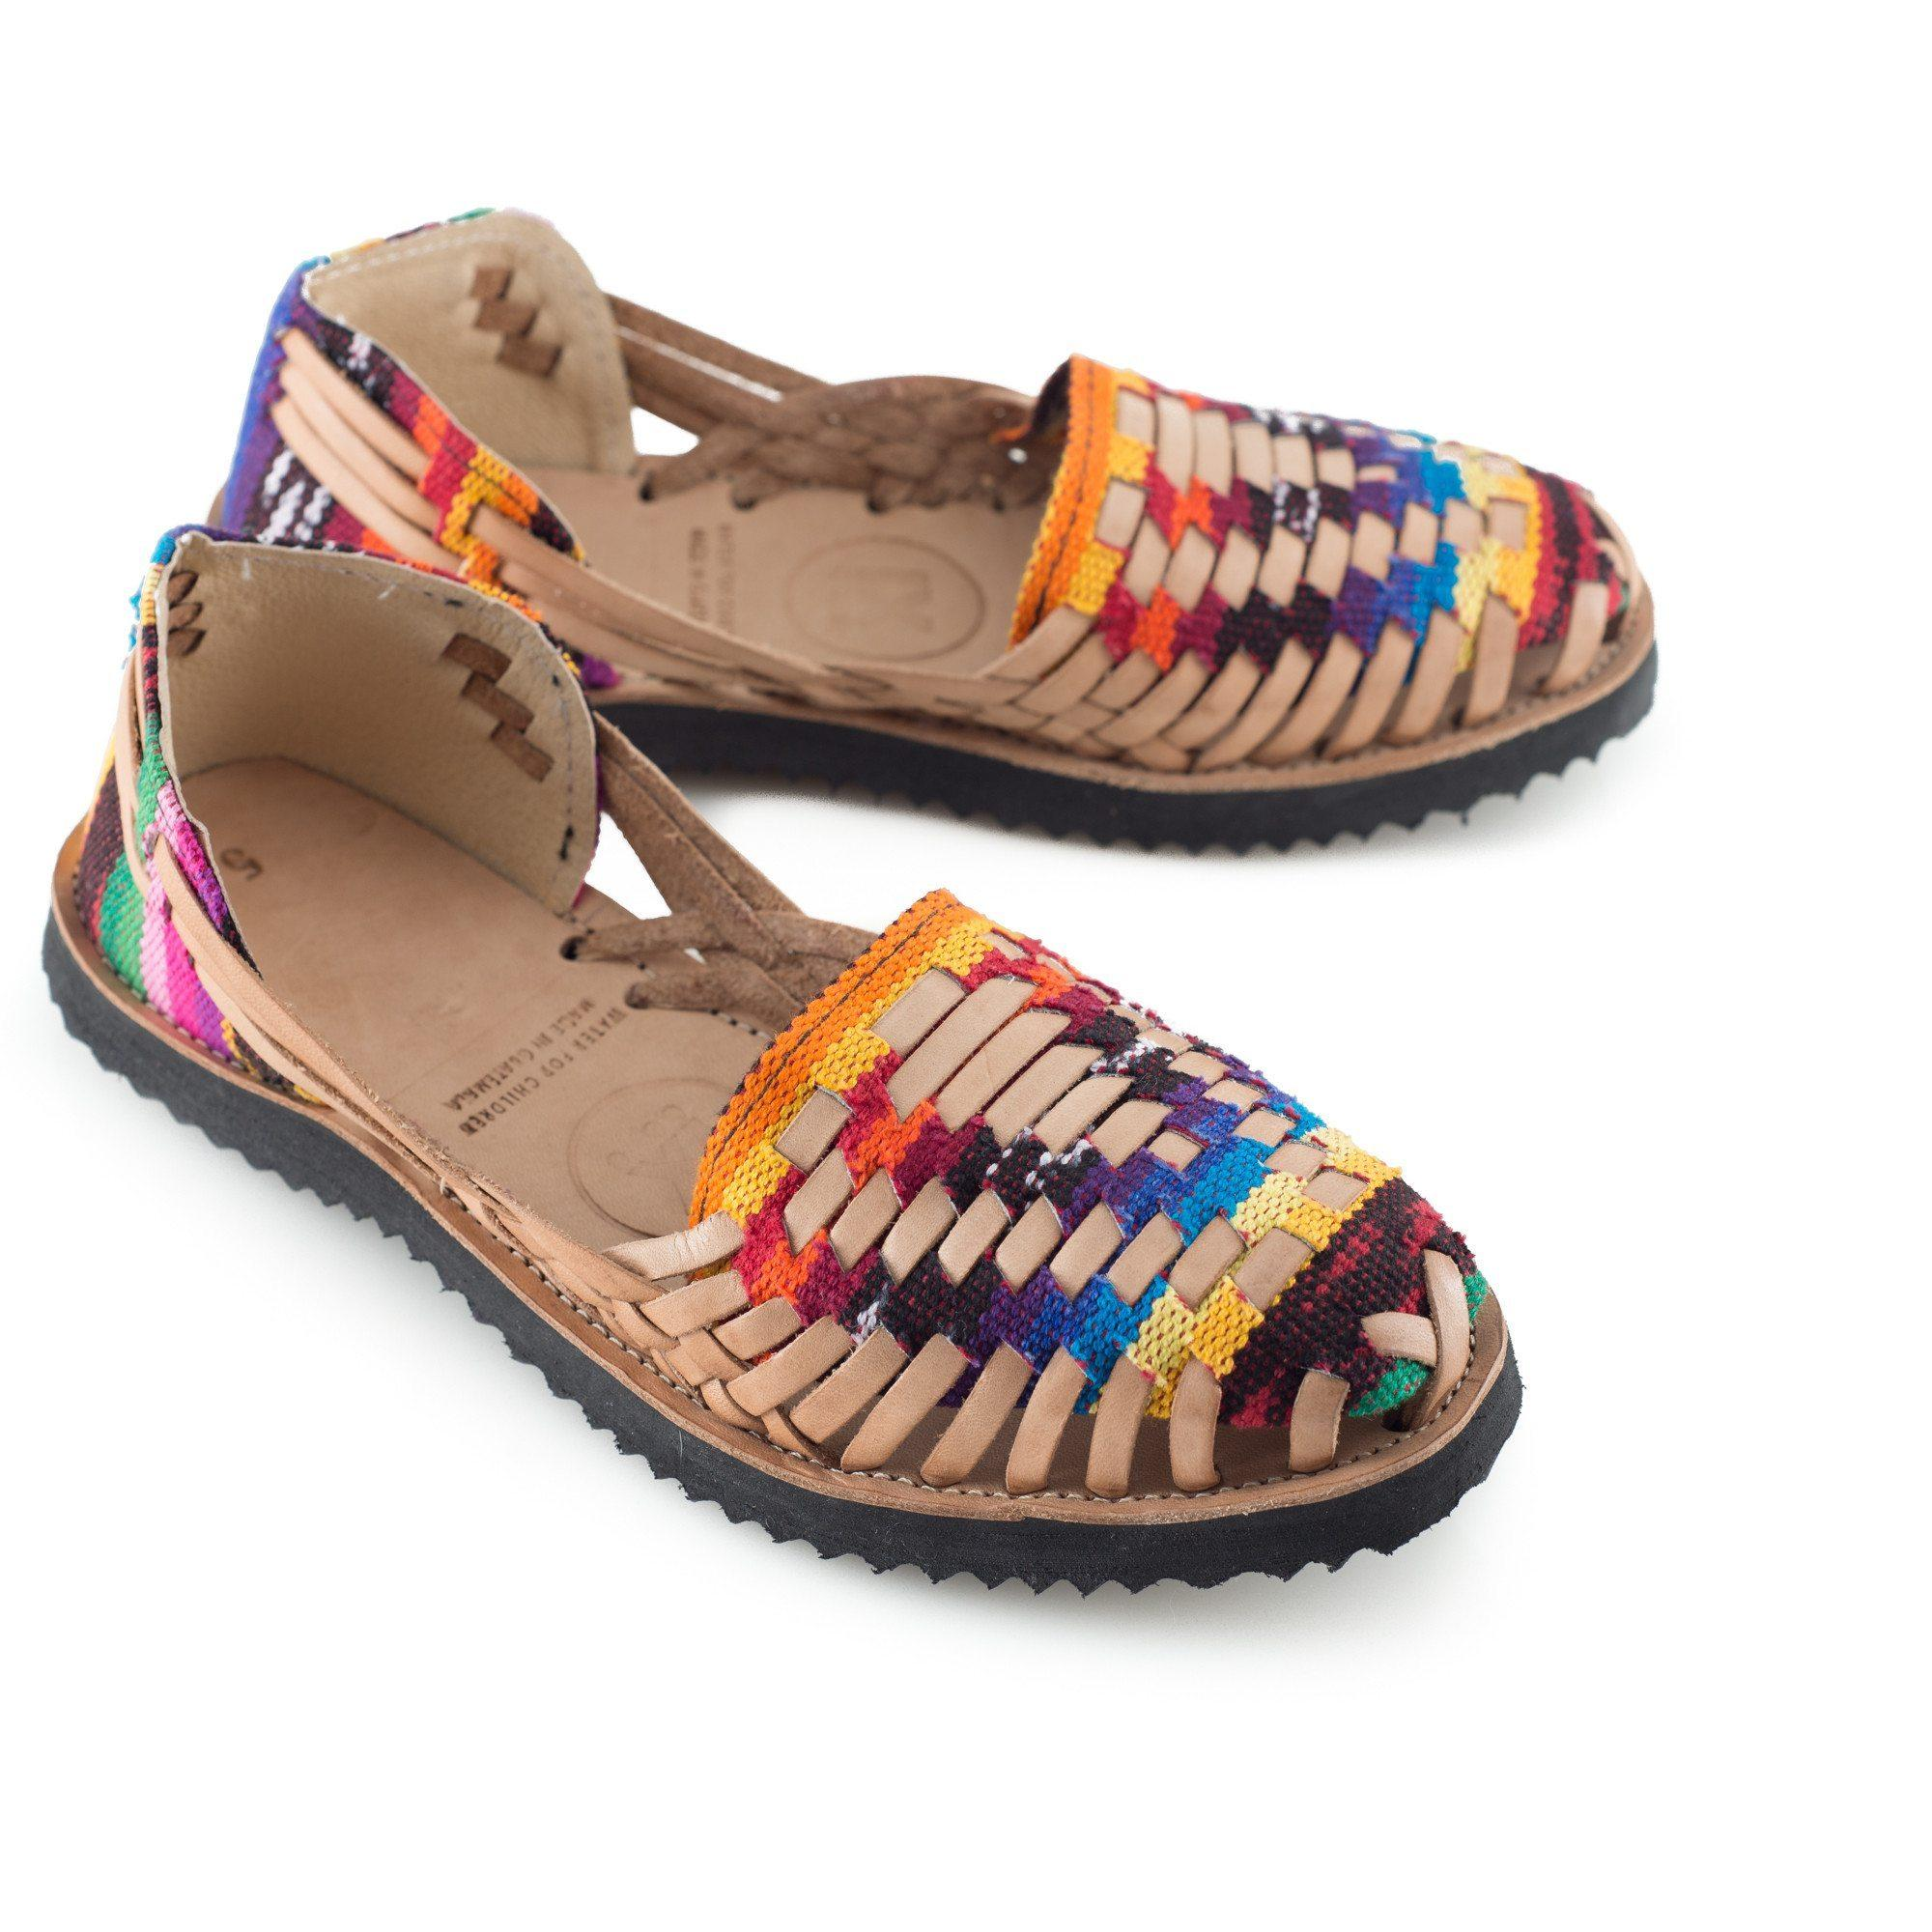 Image of Women's Traditional Mayan Woven Leather Huarache Sandals